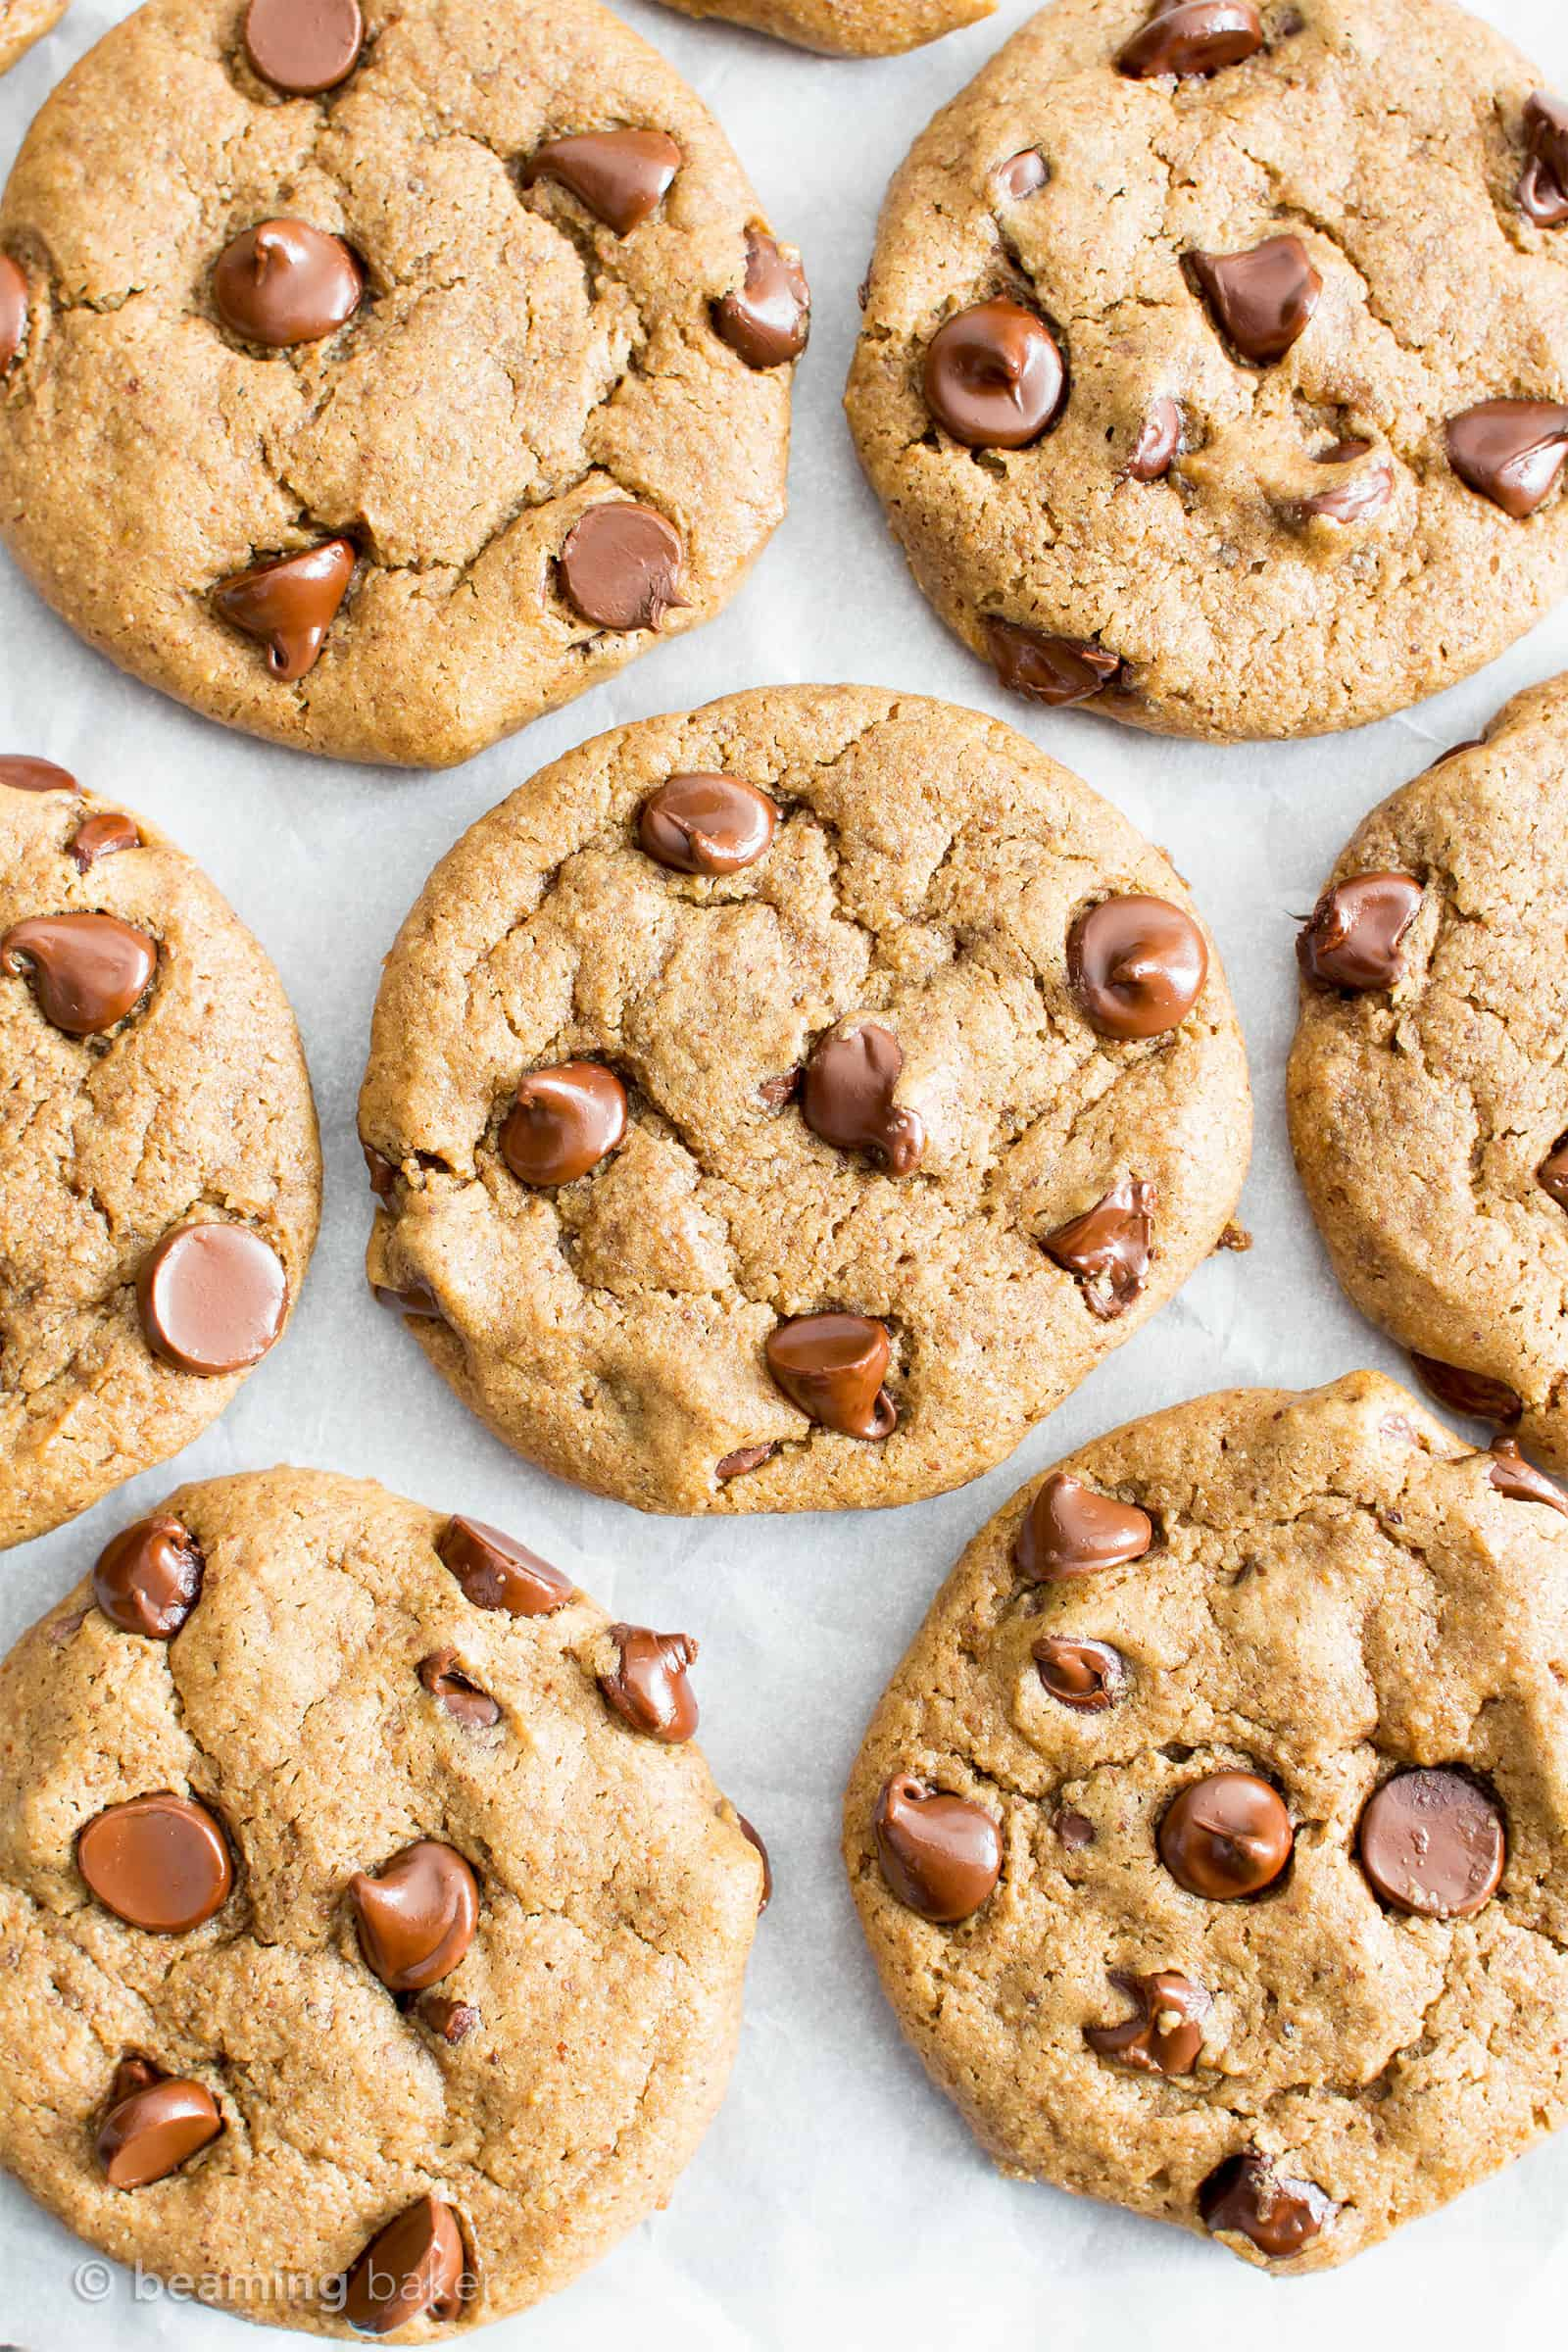 Gluten Free Almond Butter Chocolate Chip Cookies (V, GF): an irresistible recipe for perfectly chewy chocolate chip cookies made with smooth, creamy almond butter and a secret ingredient. #Vegan #GlutenFree #DairyFree #Cookies #Dessert #AD | Recipe on BeamingBaker.com